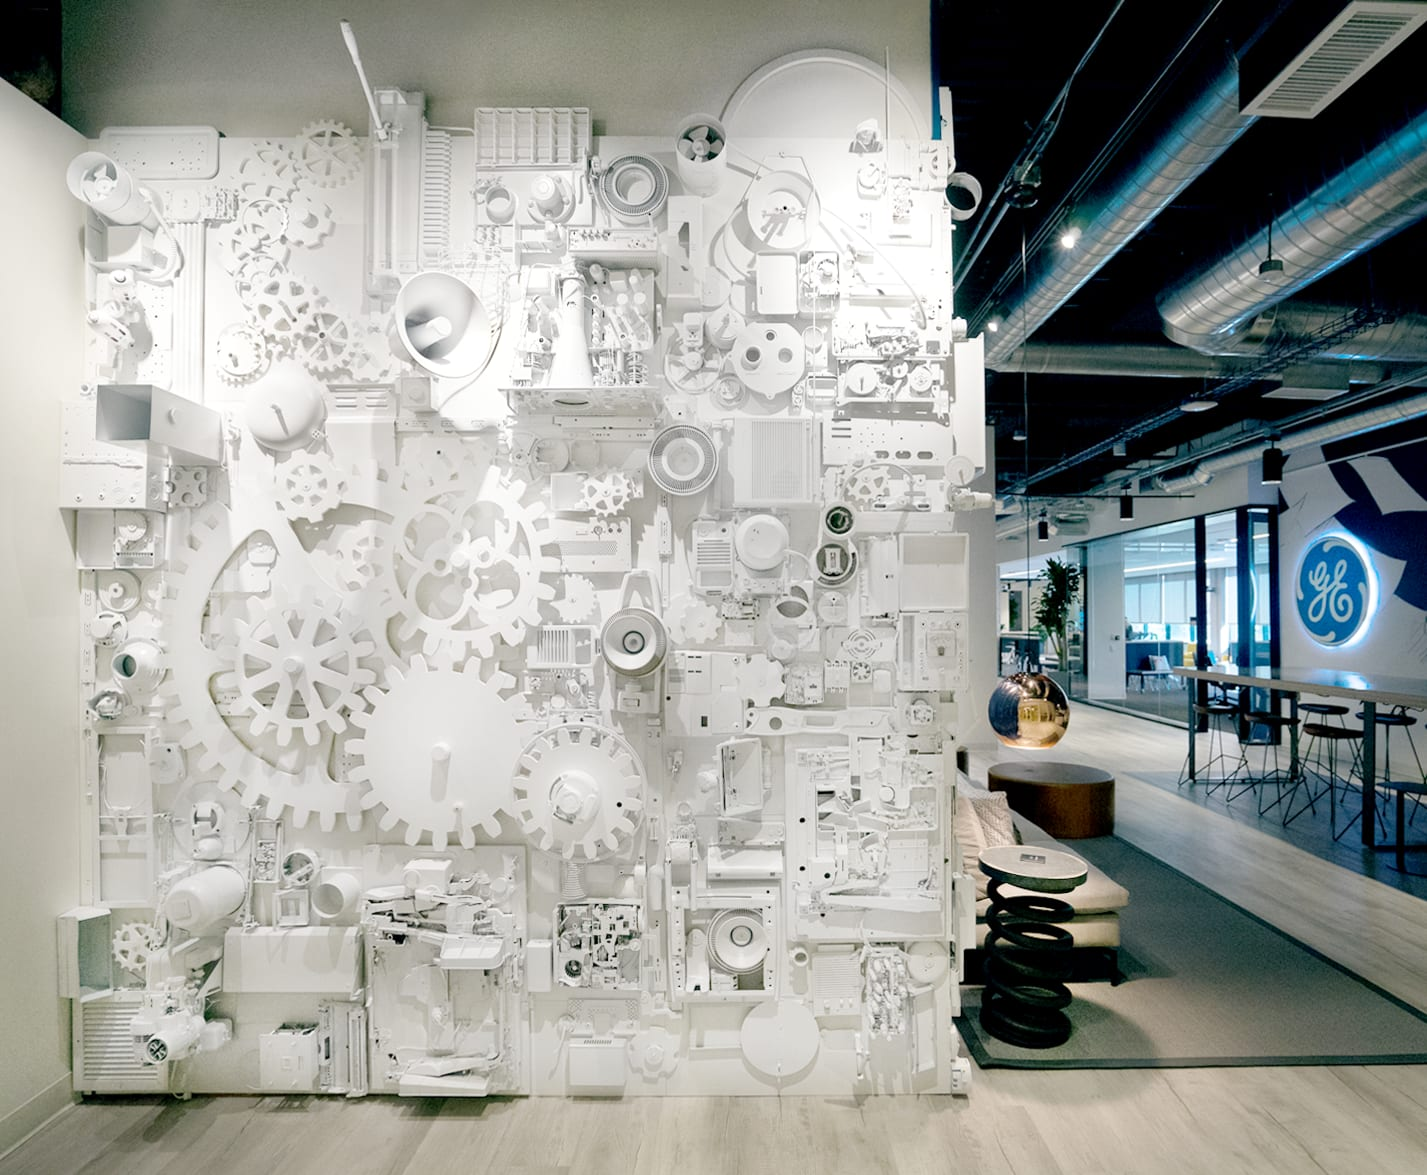 White Industrial Wall Sculpture with machine elements